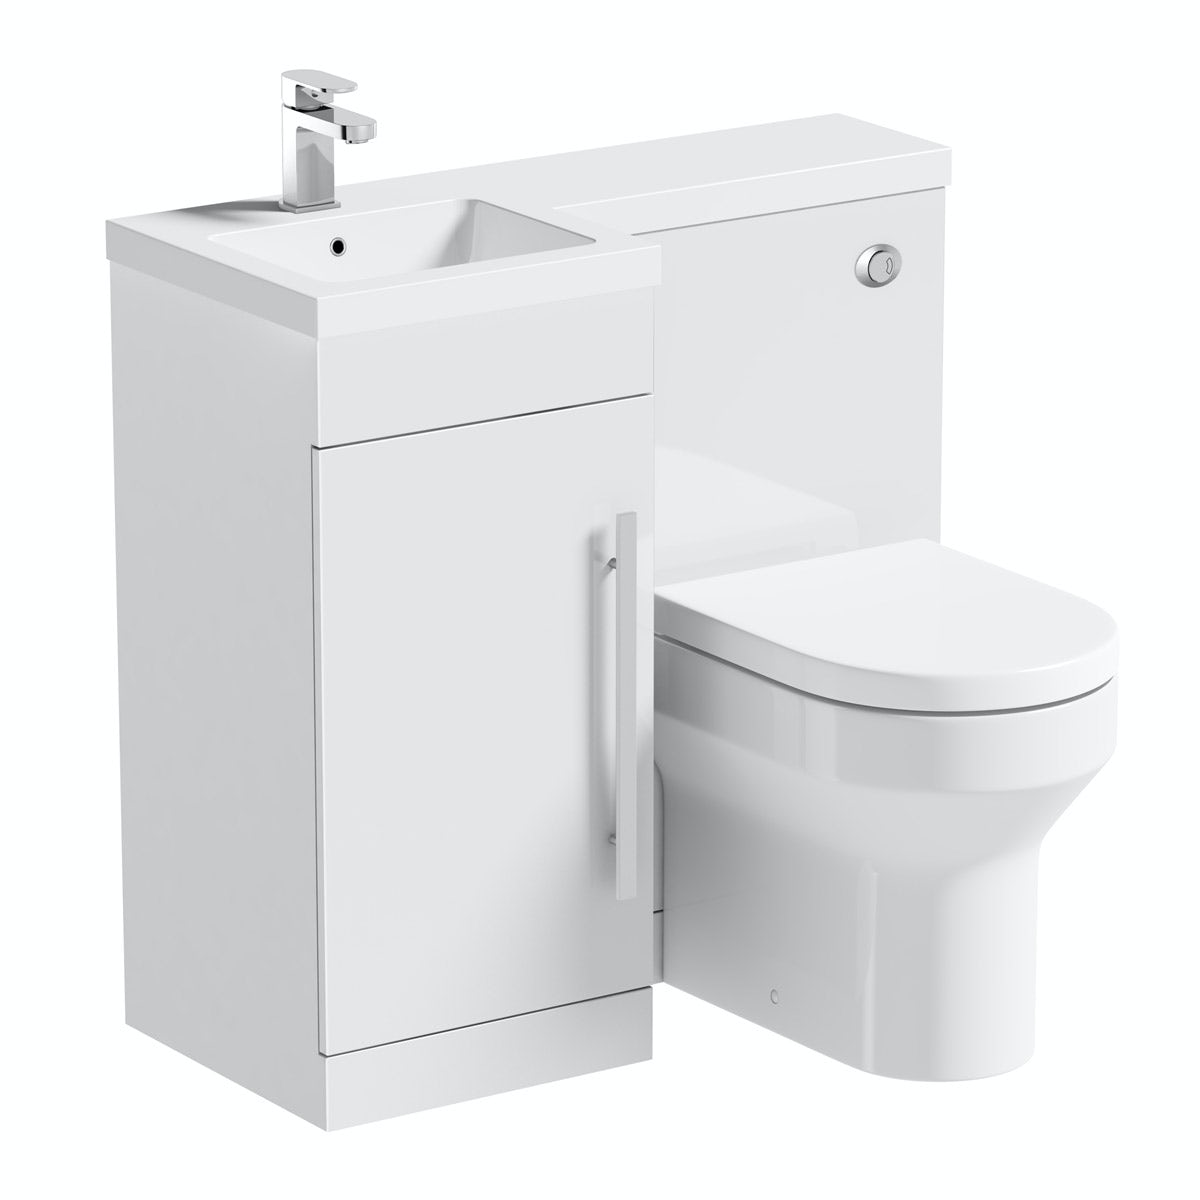 Orchard MySpace White Left Handed Unit With Oakley Back To Wall Toilet